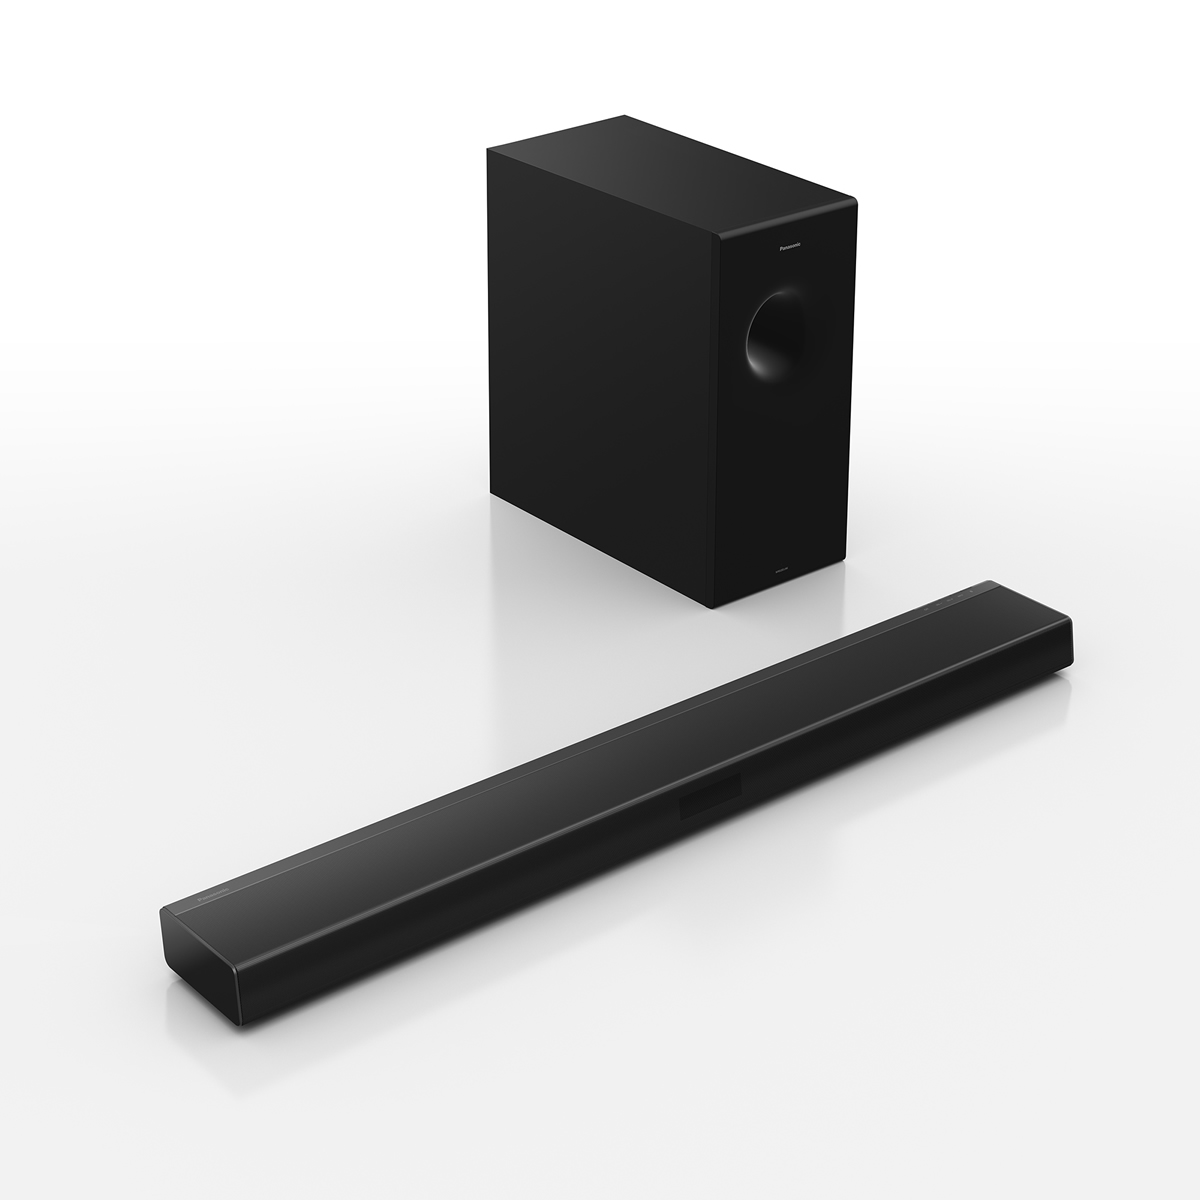 Panasonic SC-HTB600 Bluetooth Sound Bar with Dolby Atmos / DTS:X & Wireless Subwoofer